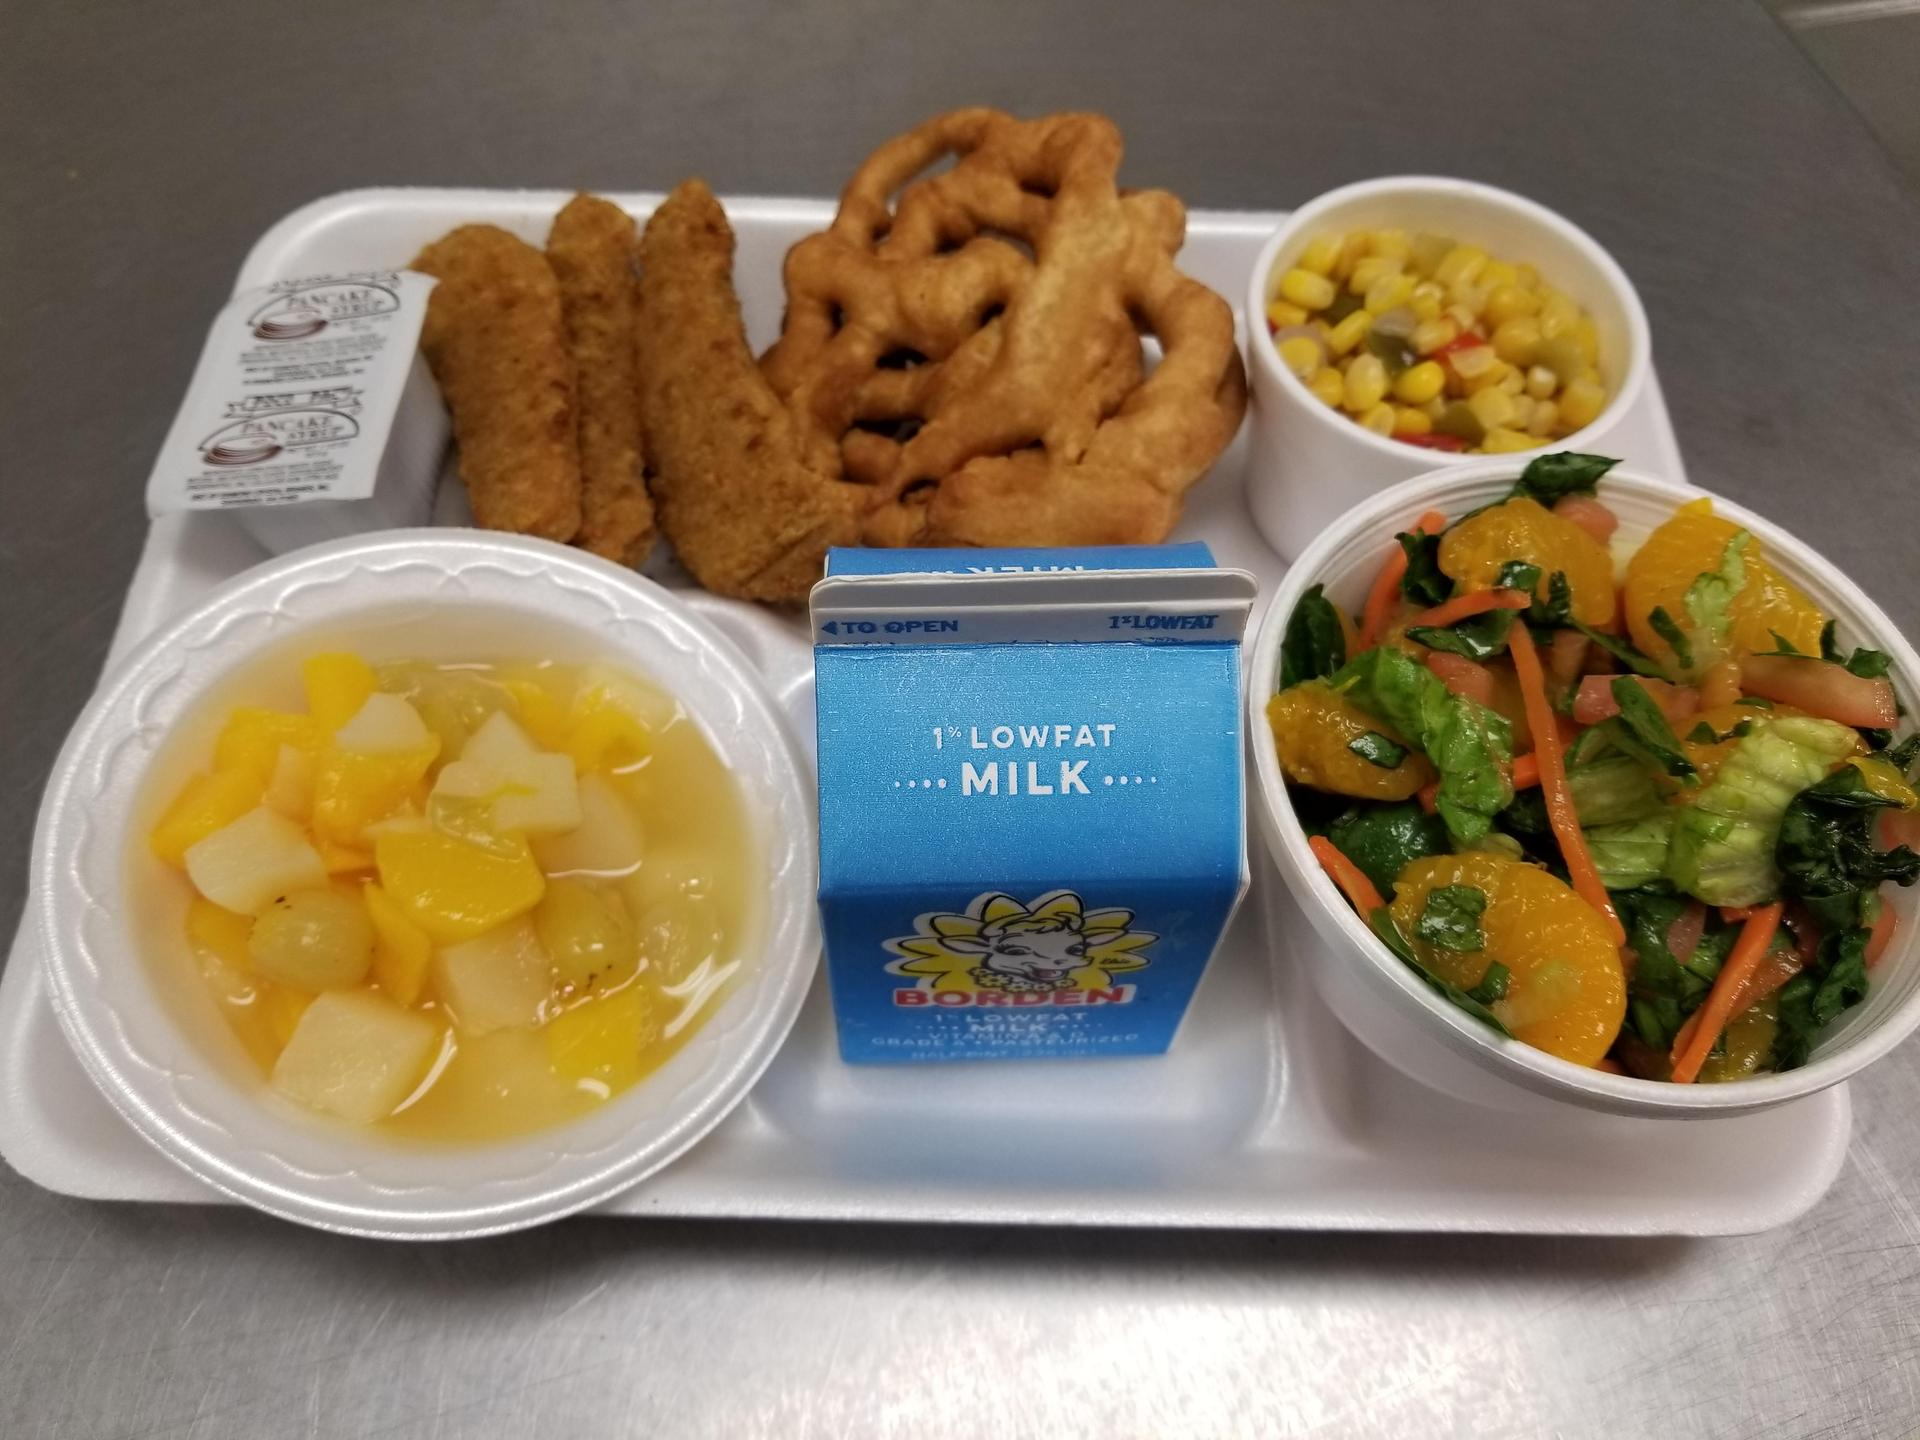 Chicken and Waffles Elementary